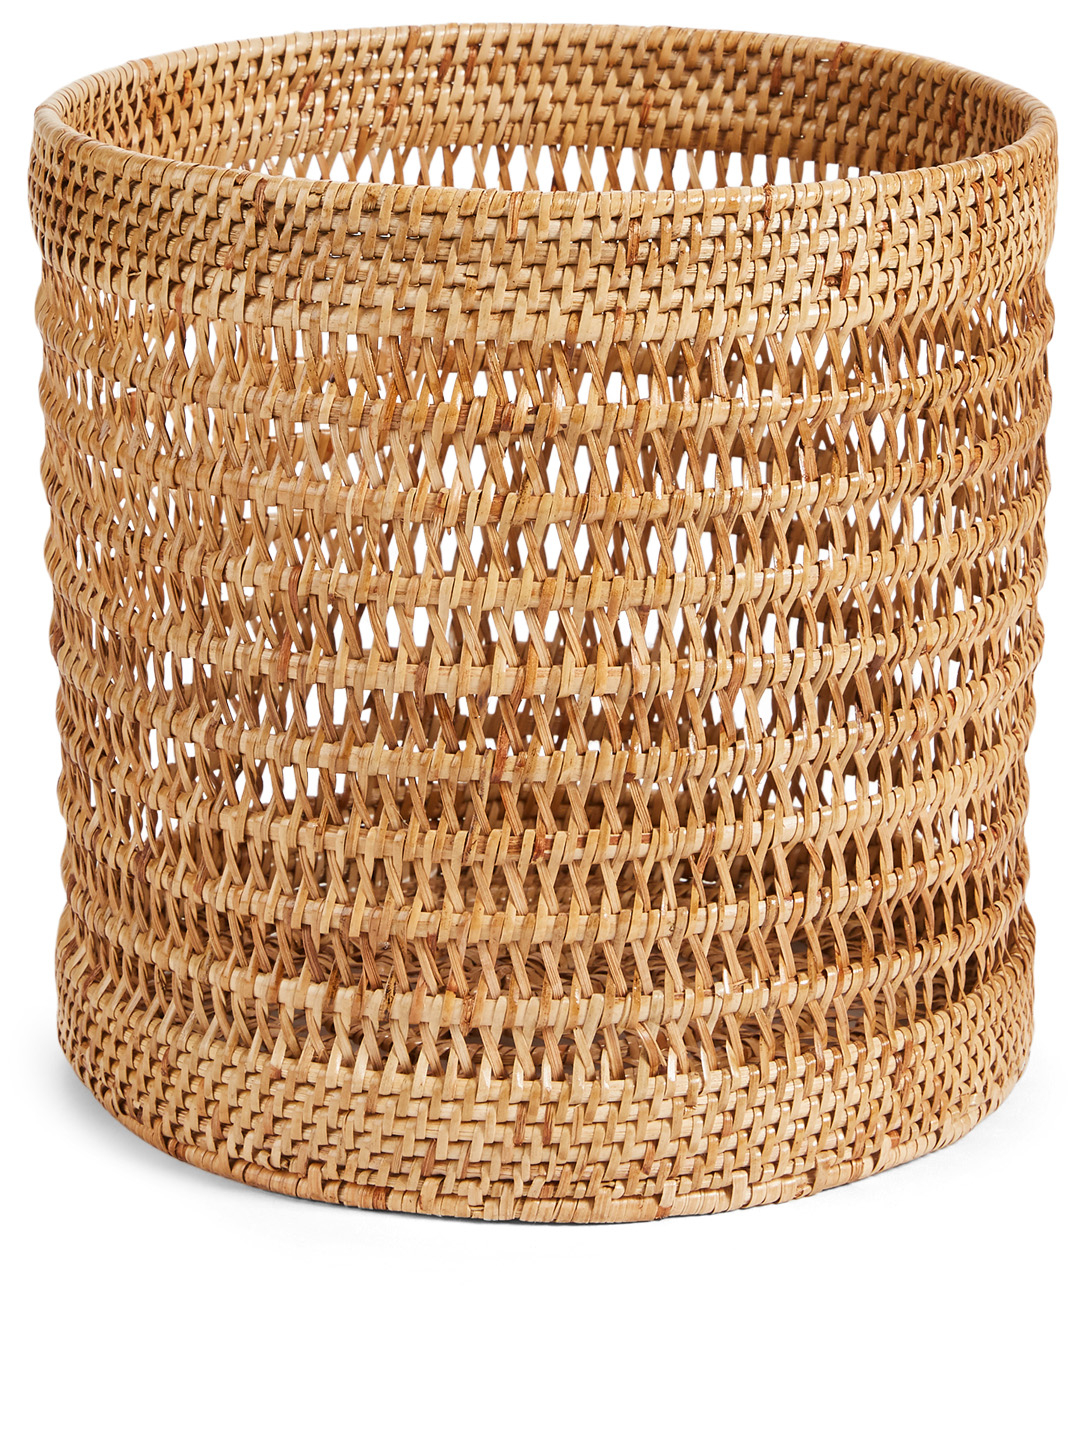 TURQUOISE MOUNTAIN Cylindrical Rattan Basket H Project